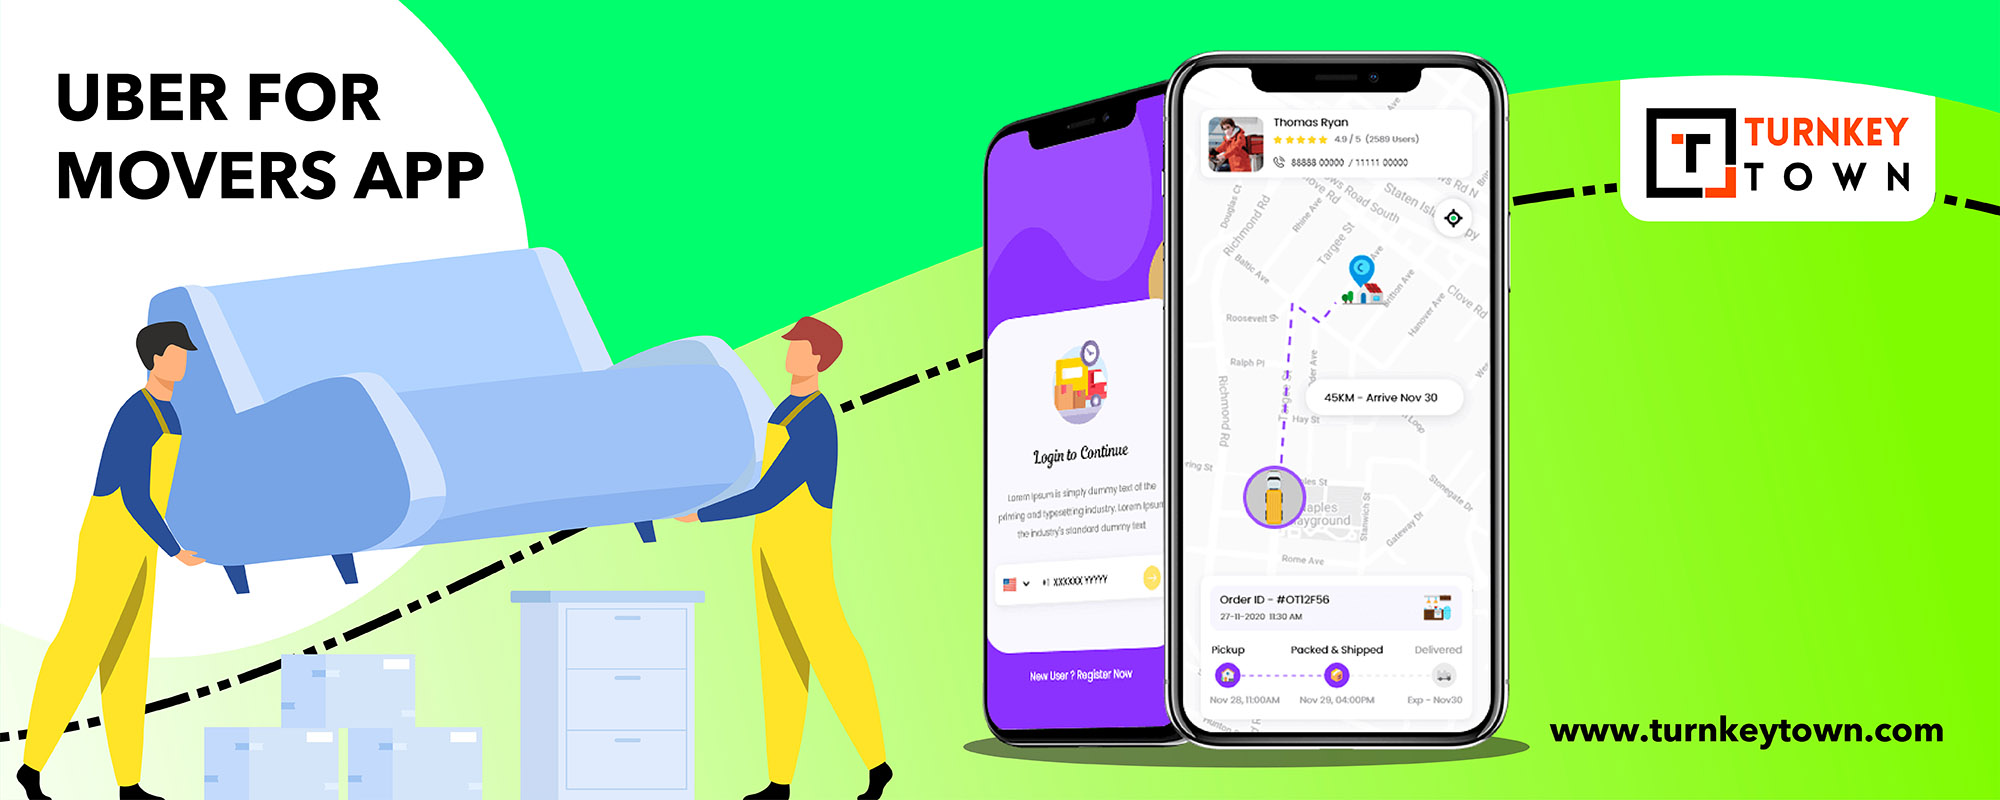 uber for movers app